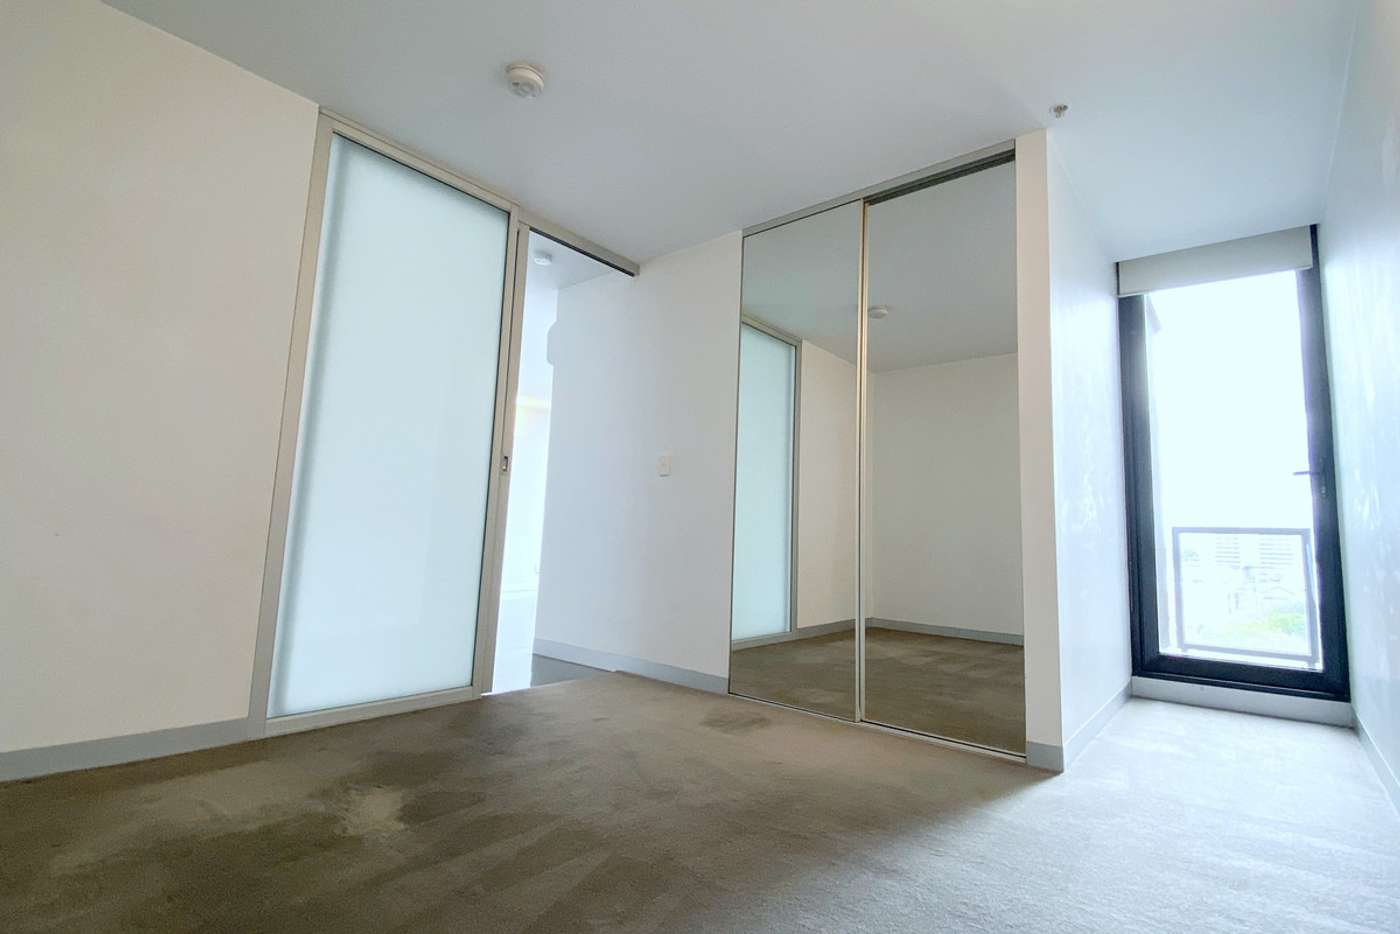 Fifth view of Homely apartment listing, 402/25 Pickles Street, Port Melbourne VIC 3207